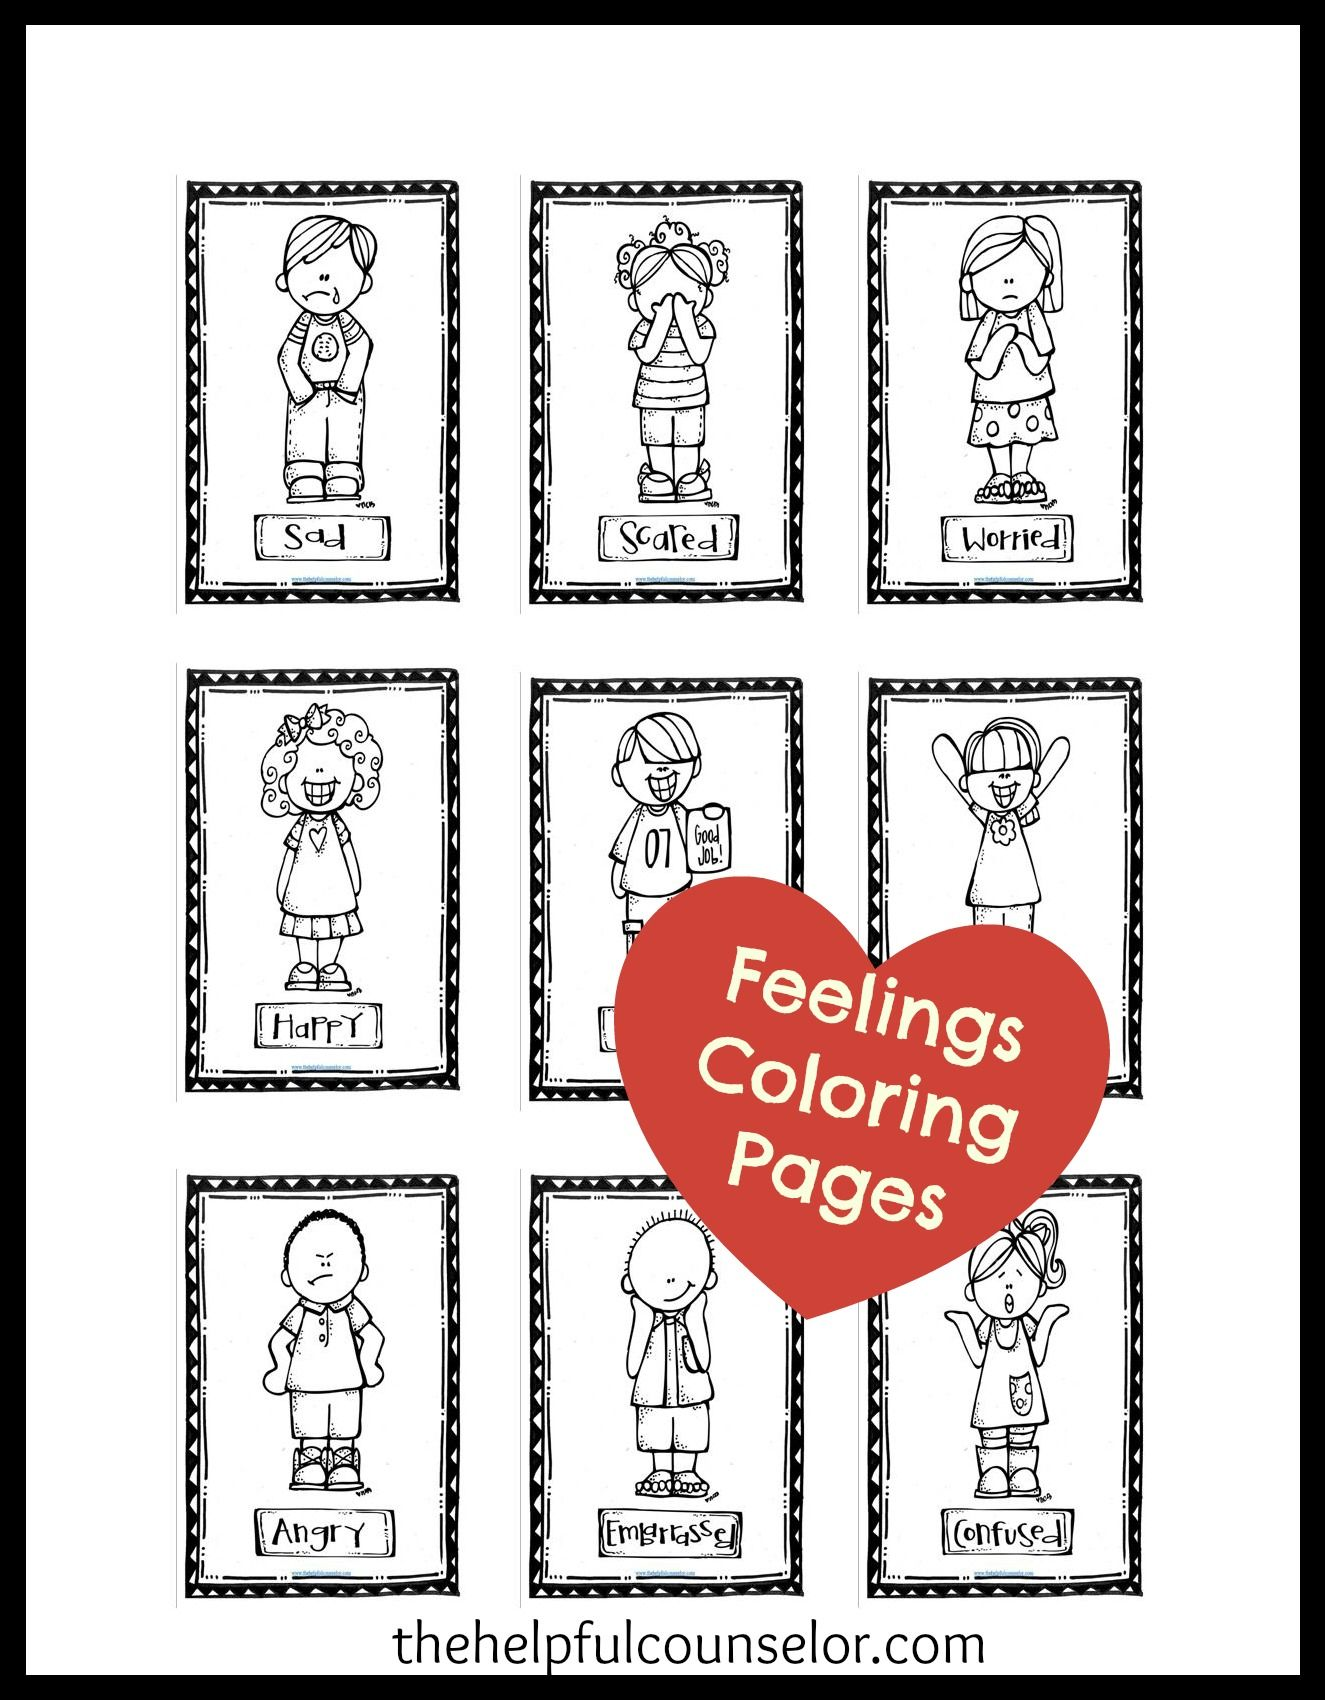 Feelings Coloring Pages Newsletter Freebie